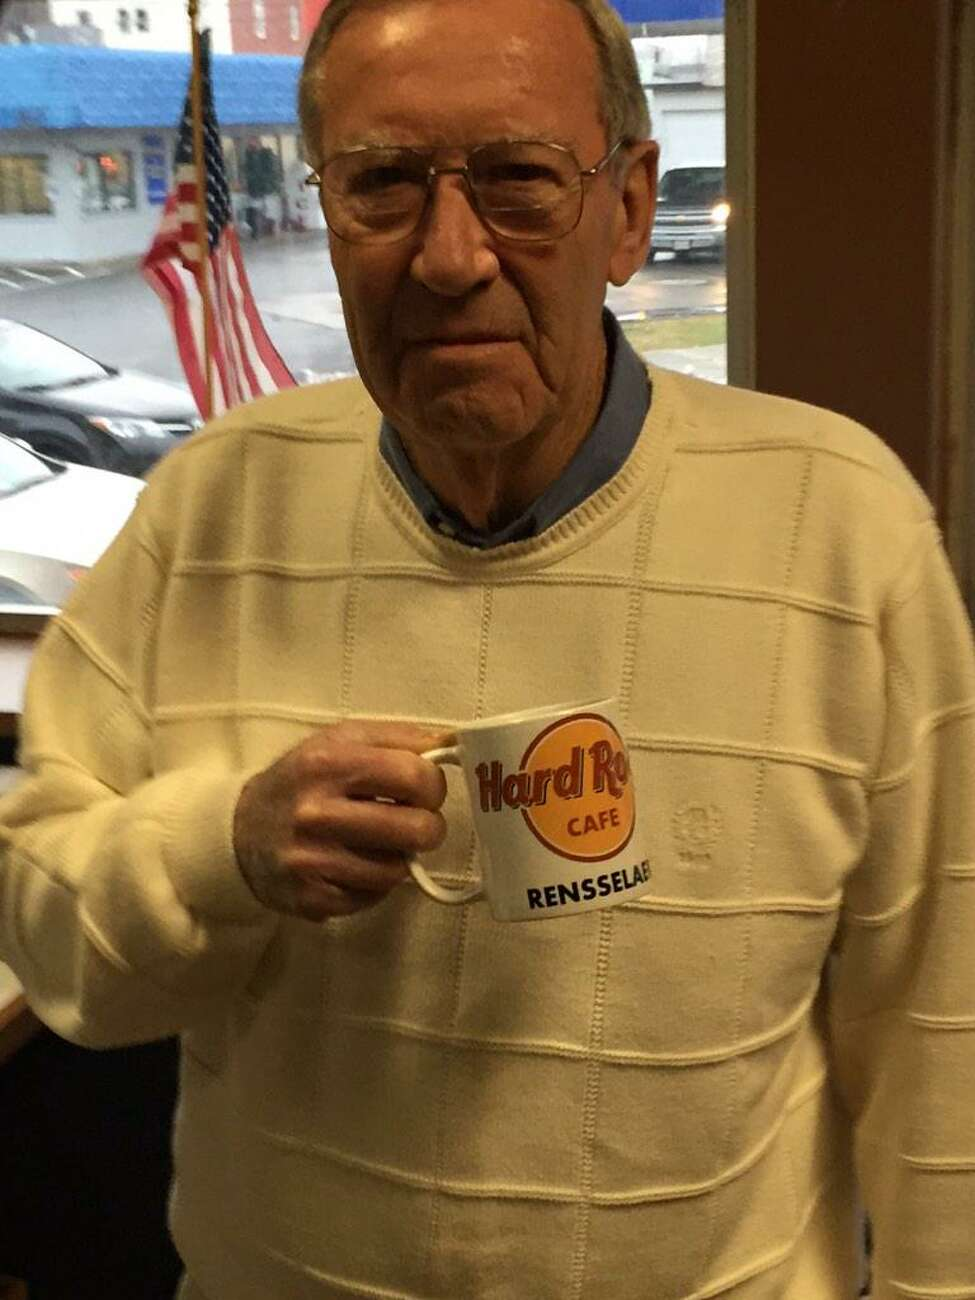 Rensselaer Mayor Dan Dwyer holds his Hard Rock Cafe mug at city hall in advance of the state Gaming Commission Siting Board's announcement of its recommendations for casino sites on Dec. 17, 2014. (Kenneth C. Crowe II/Times Union)